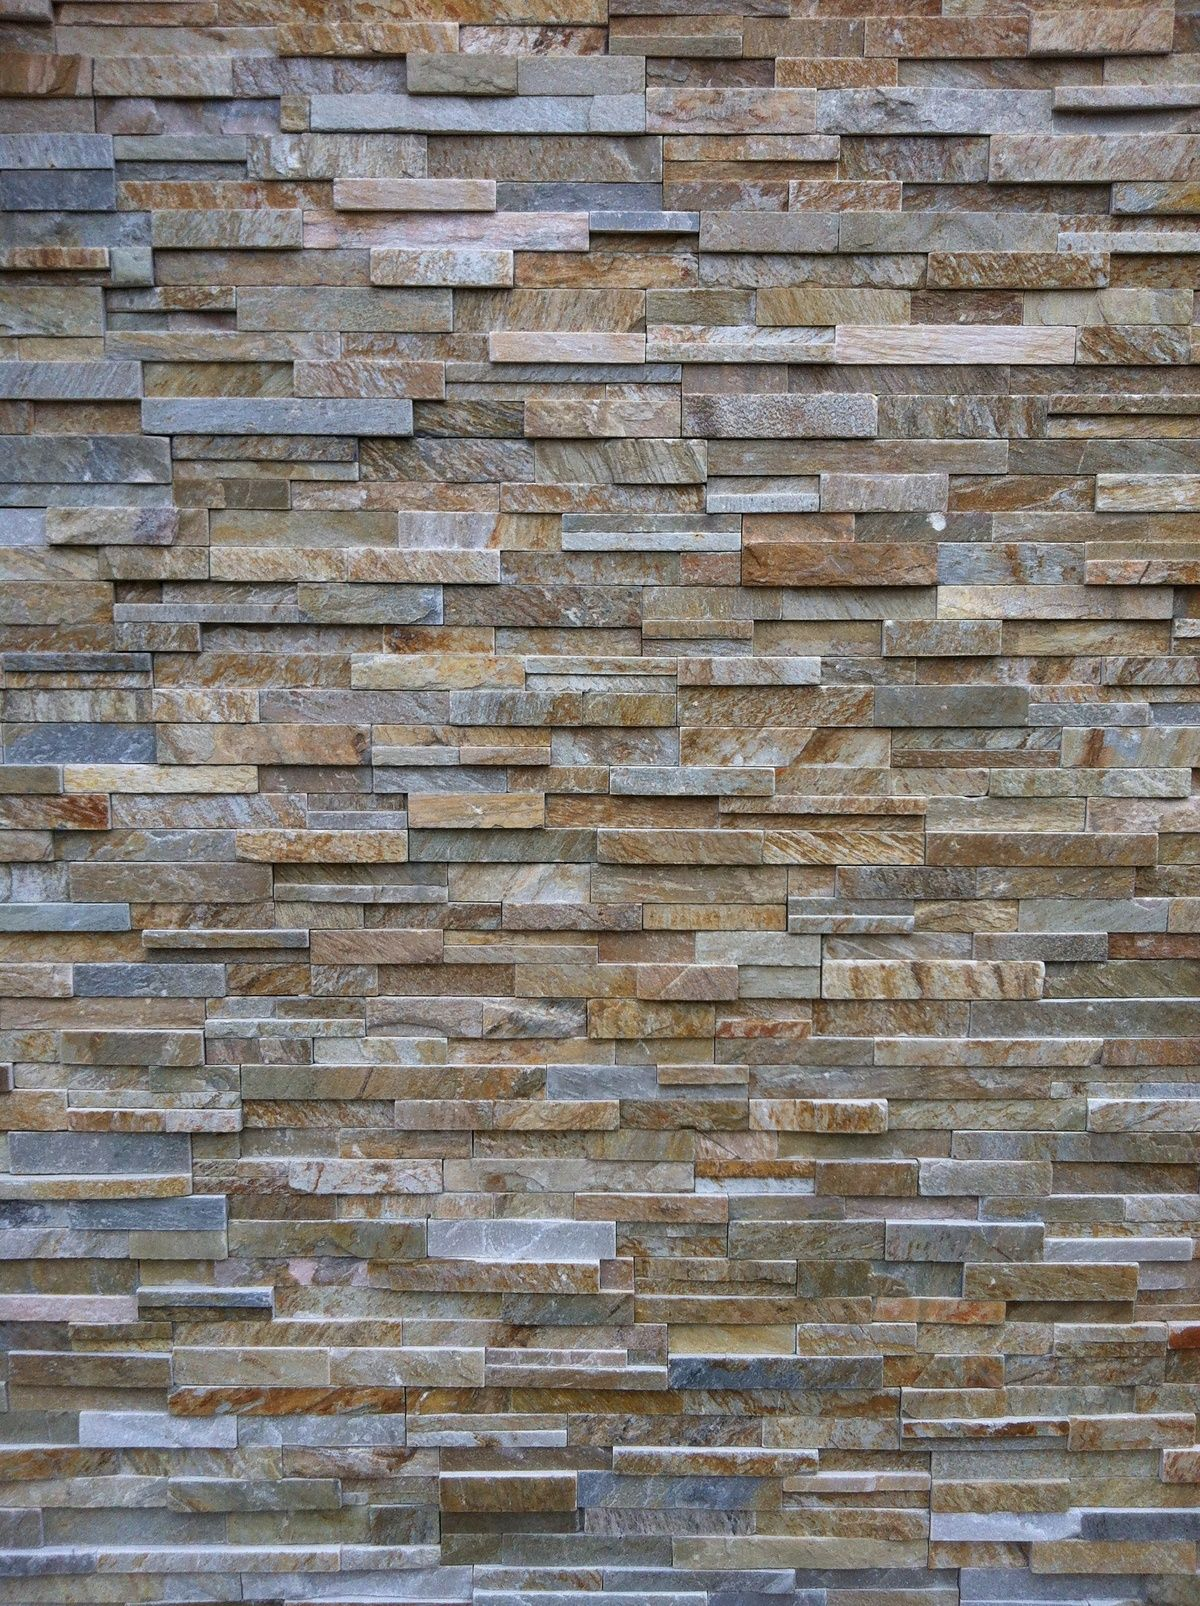 Pin By A Janisch On Home Stone Veneer Stone Cladding